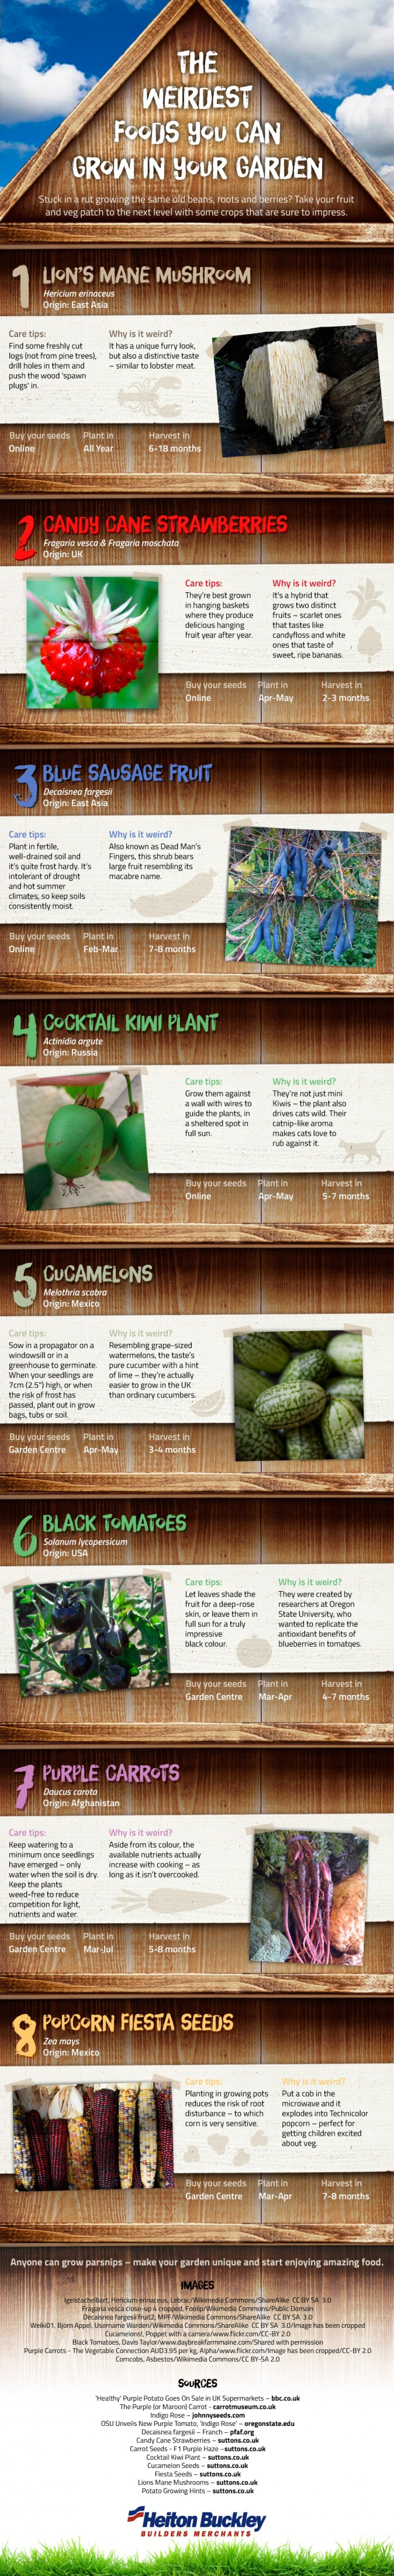 The Weirdest Foods You Can Grow in Your Garden Infographic